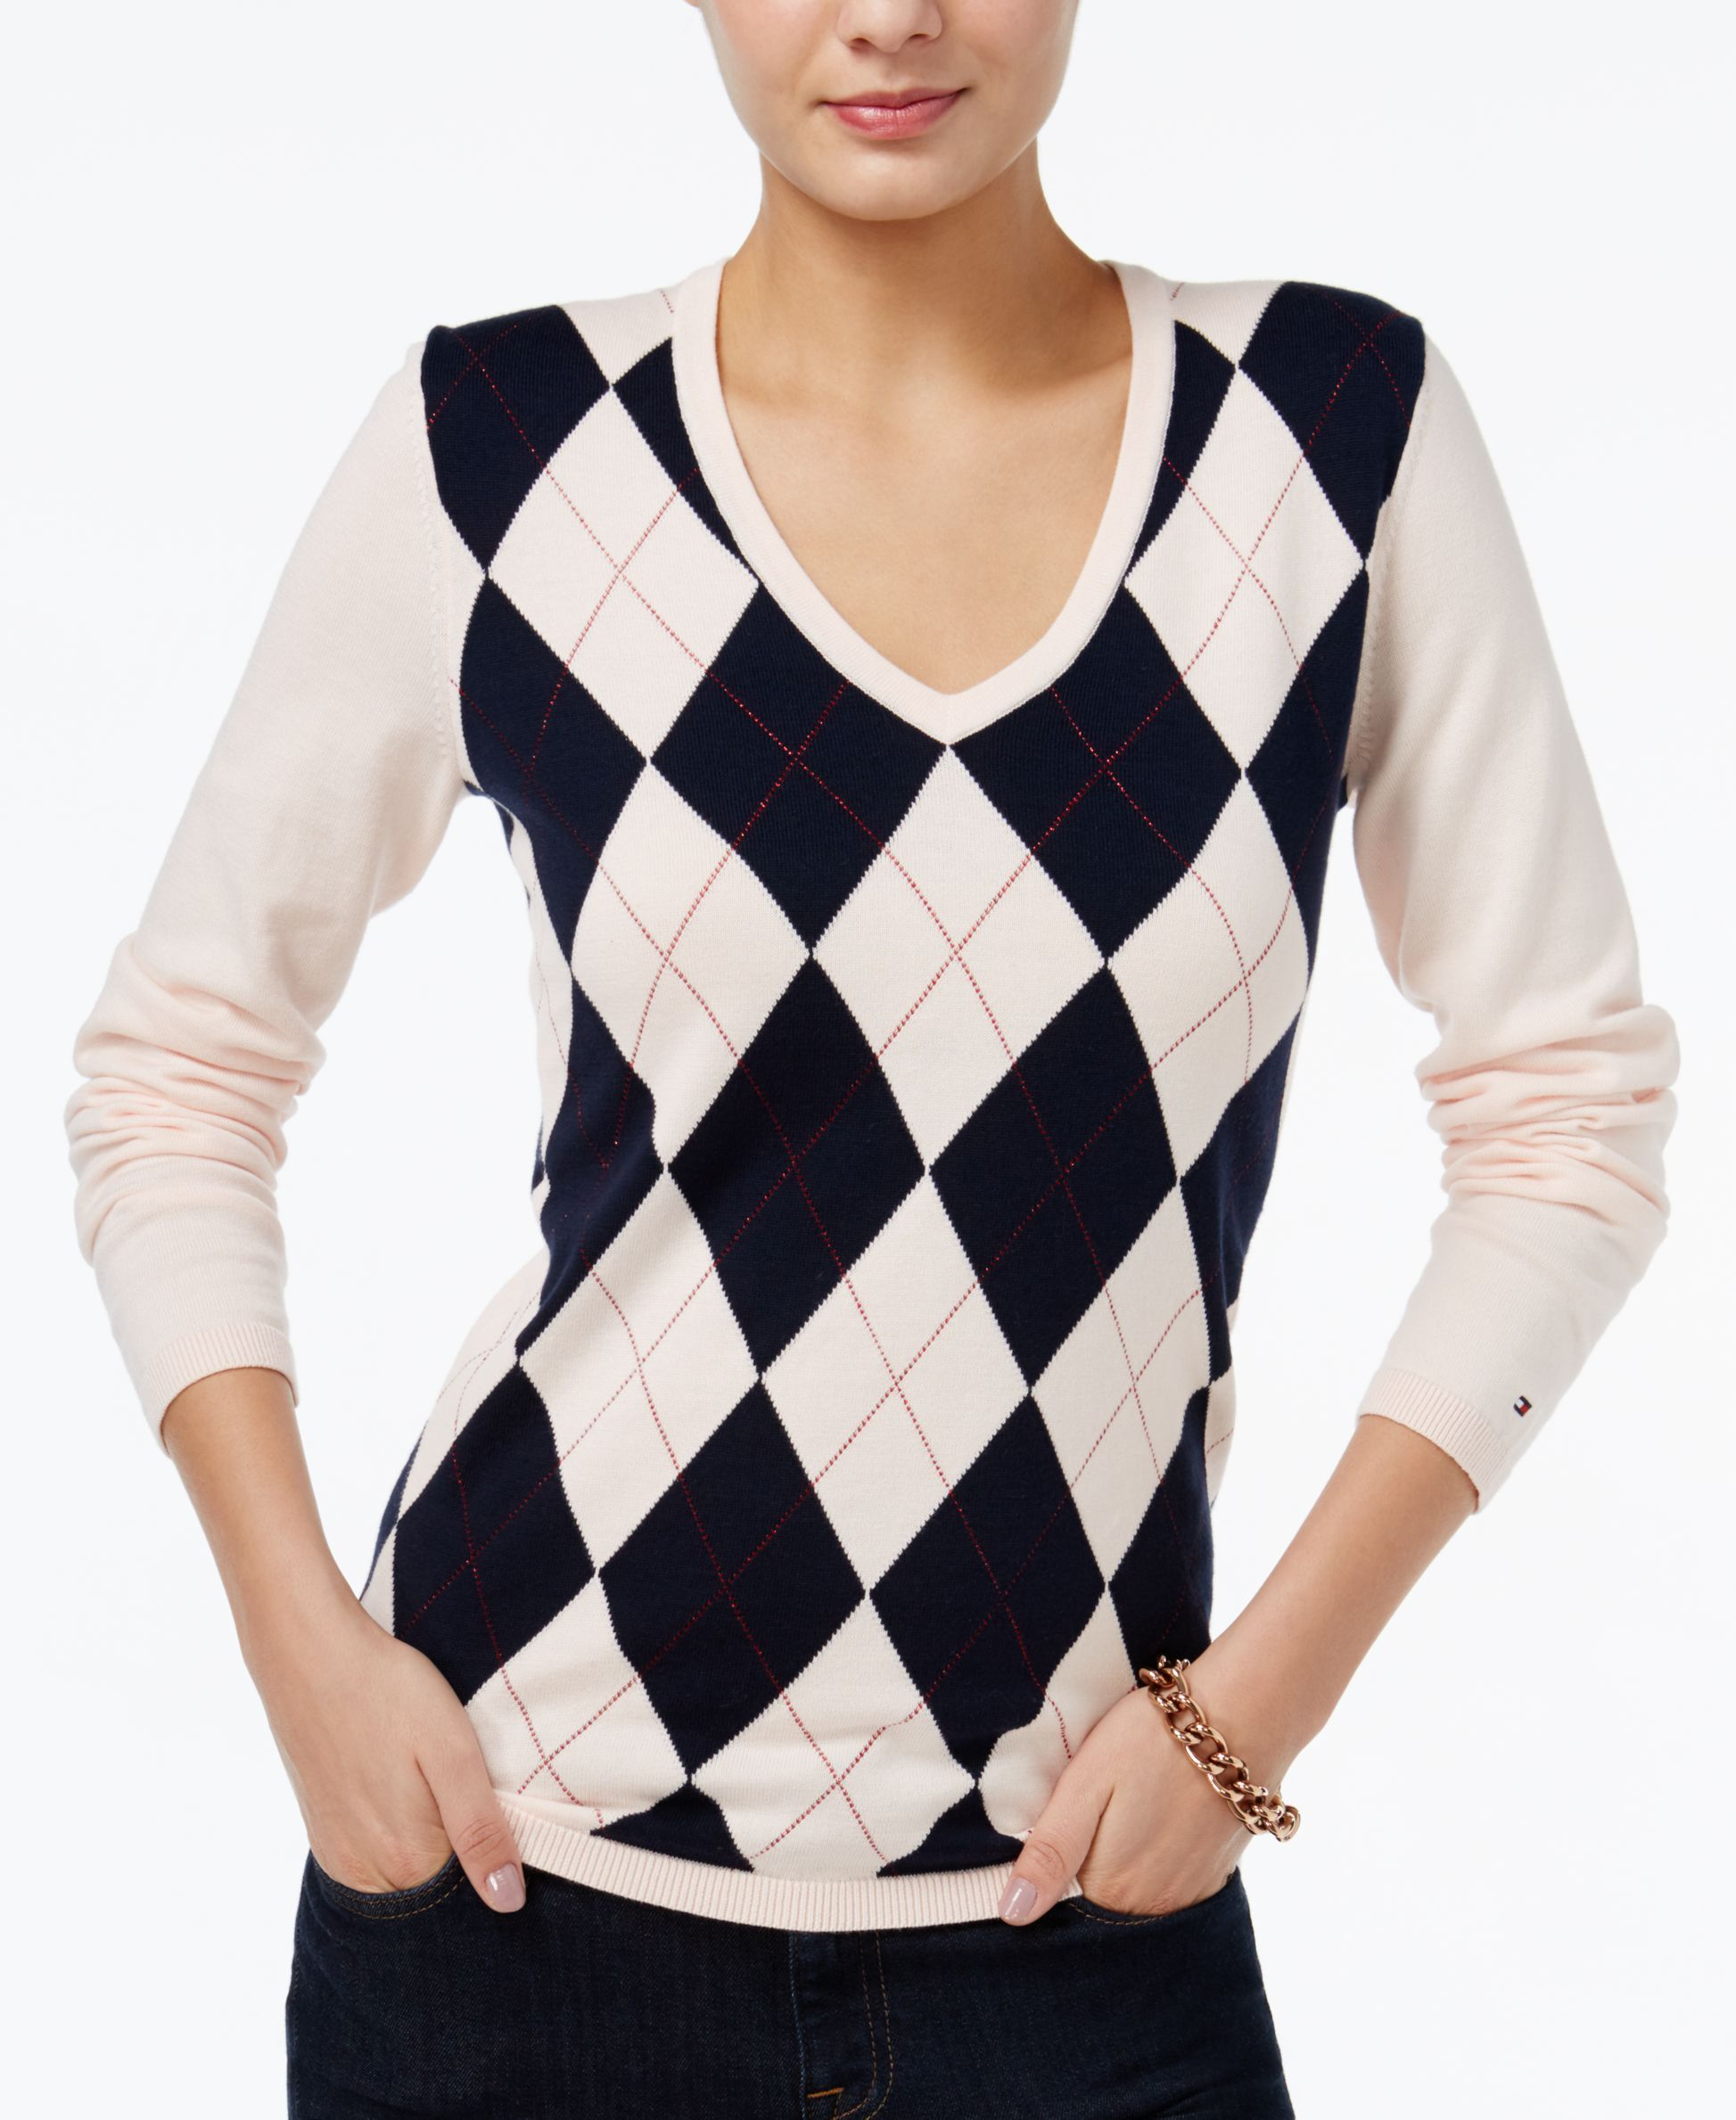 Cozy up to Tommy Hilfiger's timeless sweater. It's a classic look ...